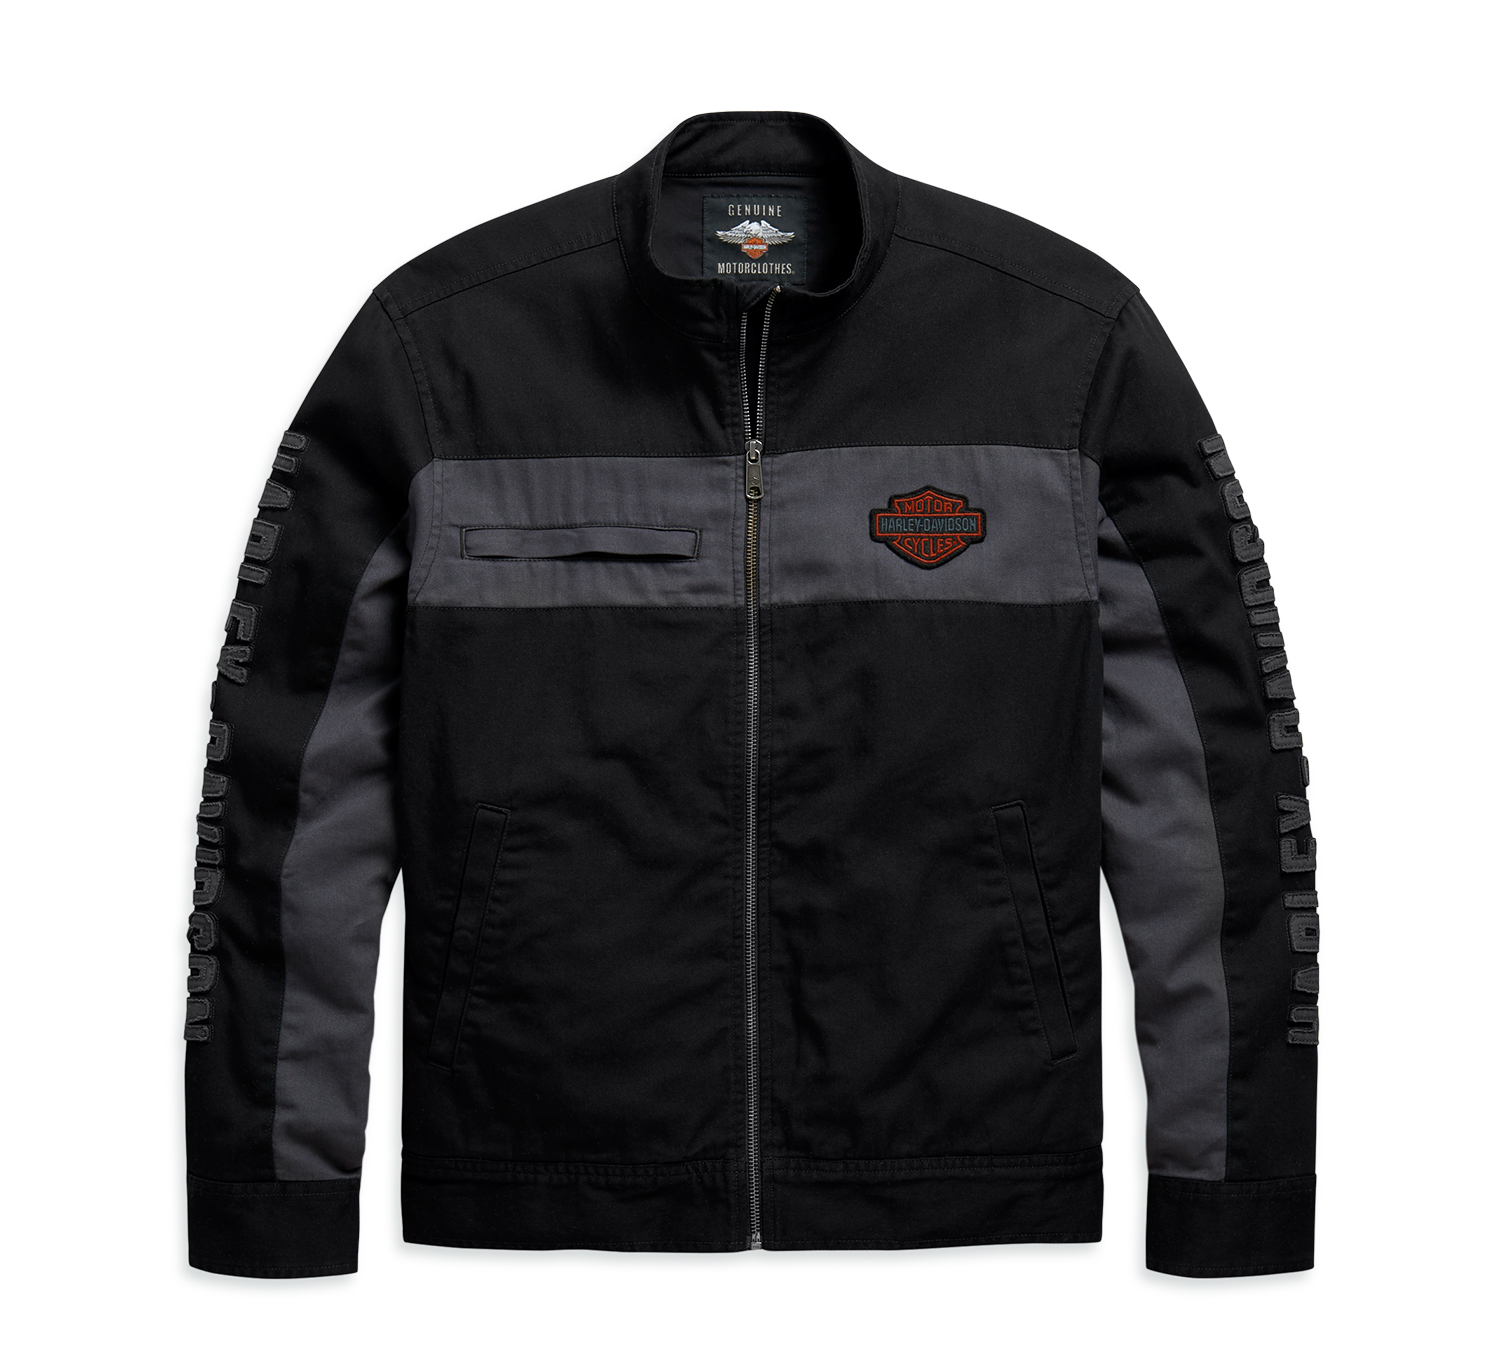 Harley-Davidson Men's Copperblock Canvas Jacket